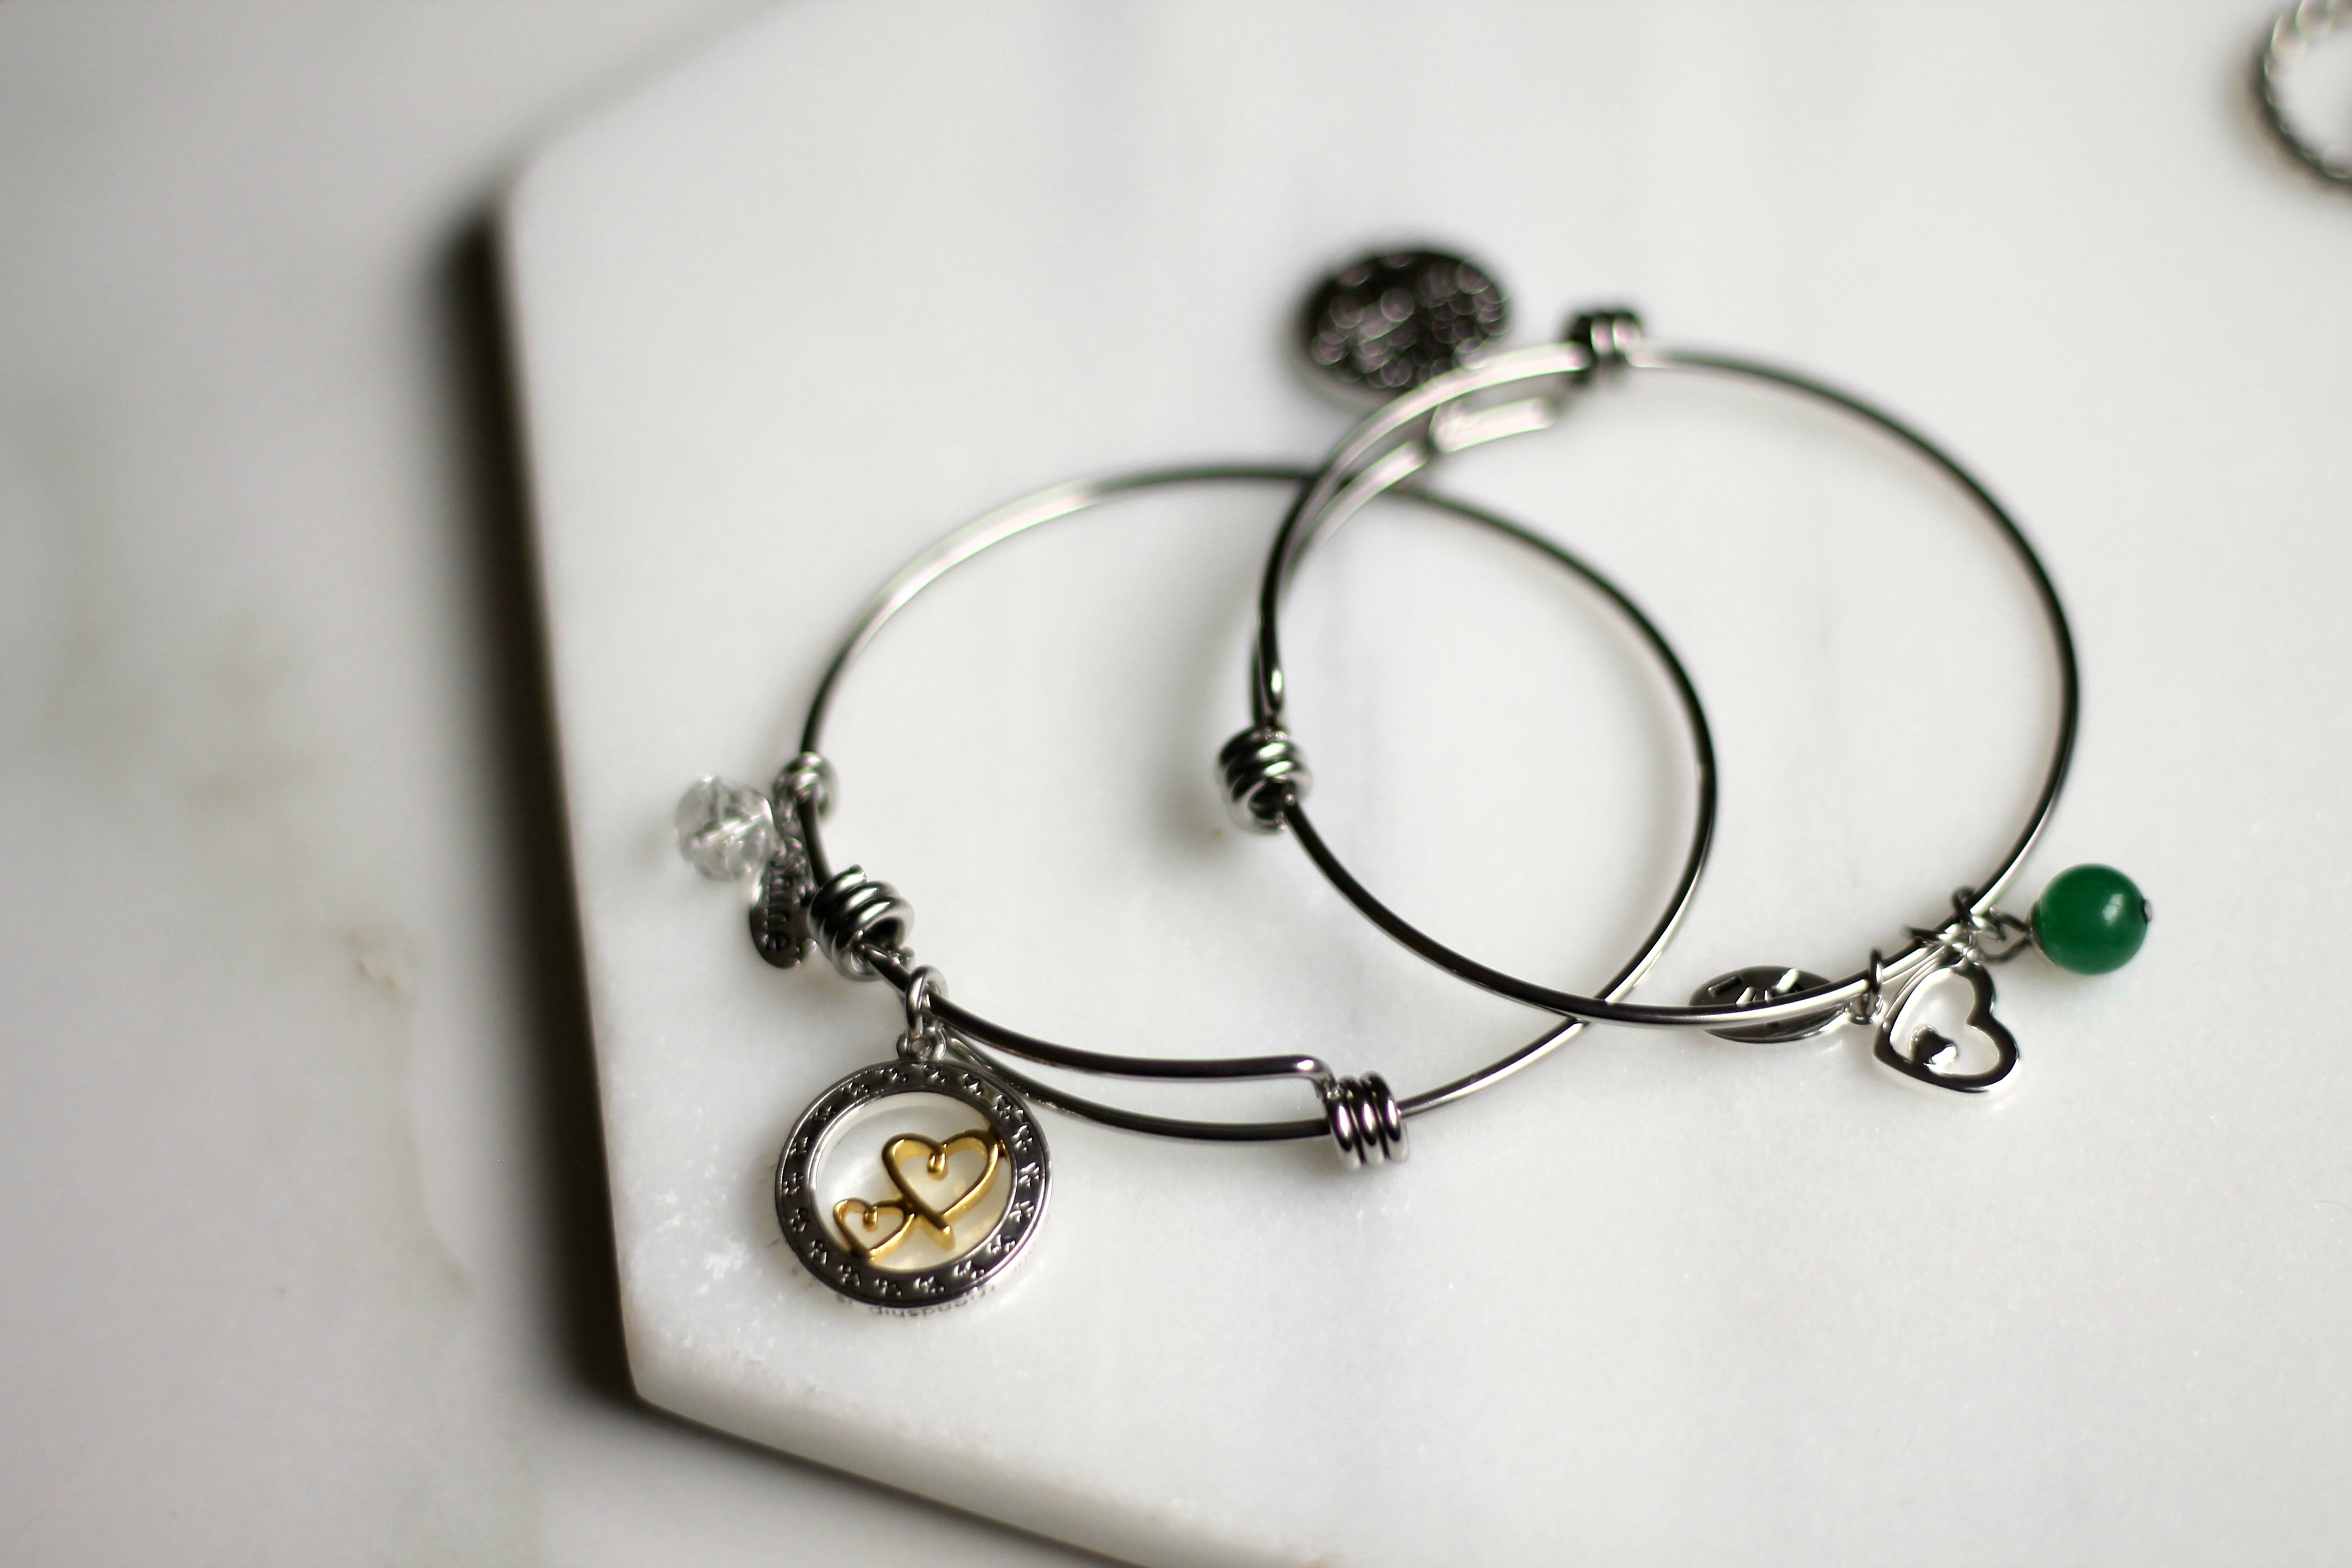 silver-bracelet-best-buy-charms-gift-3